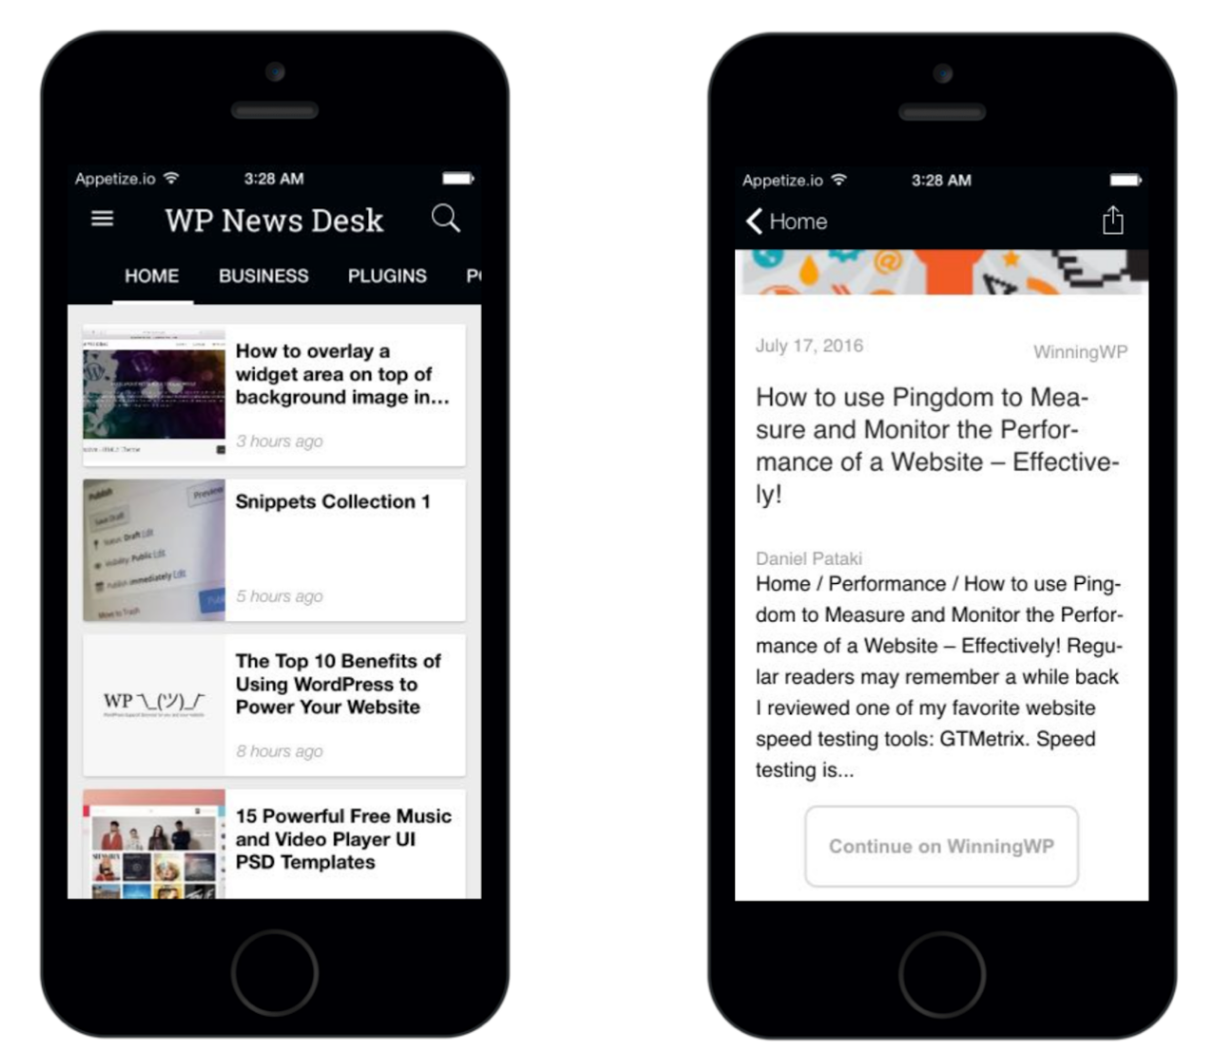 wp-news-desk-app